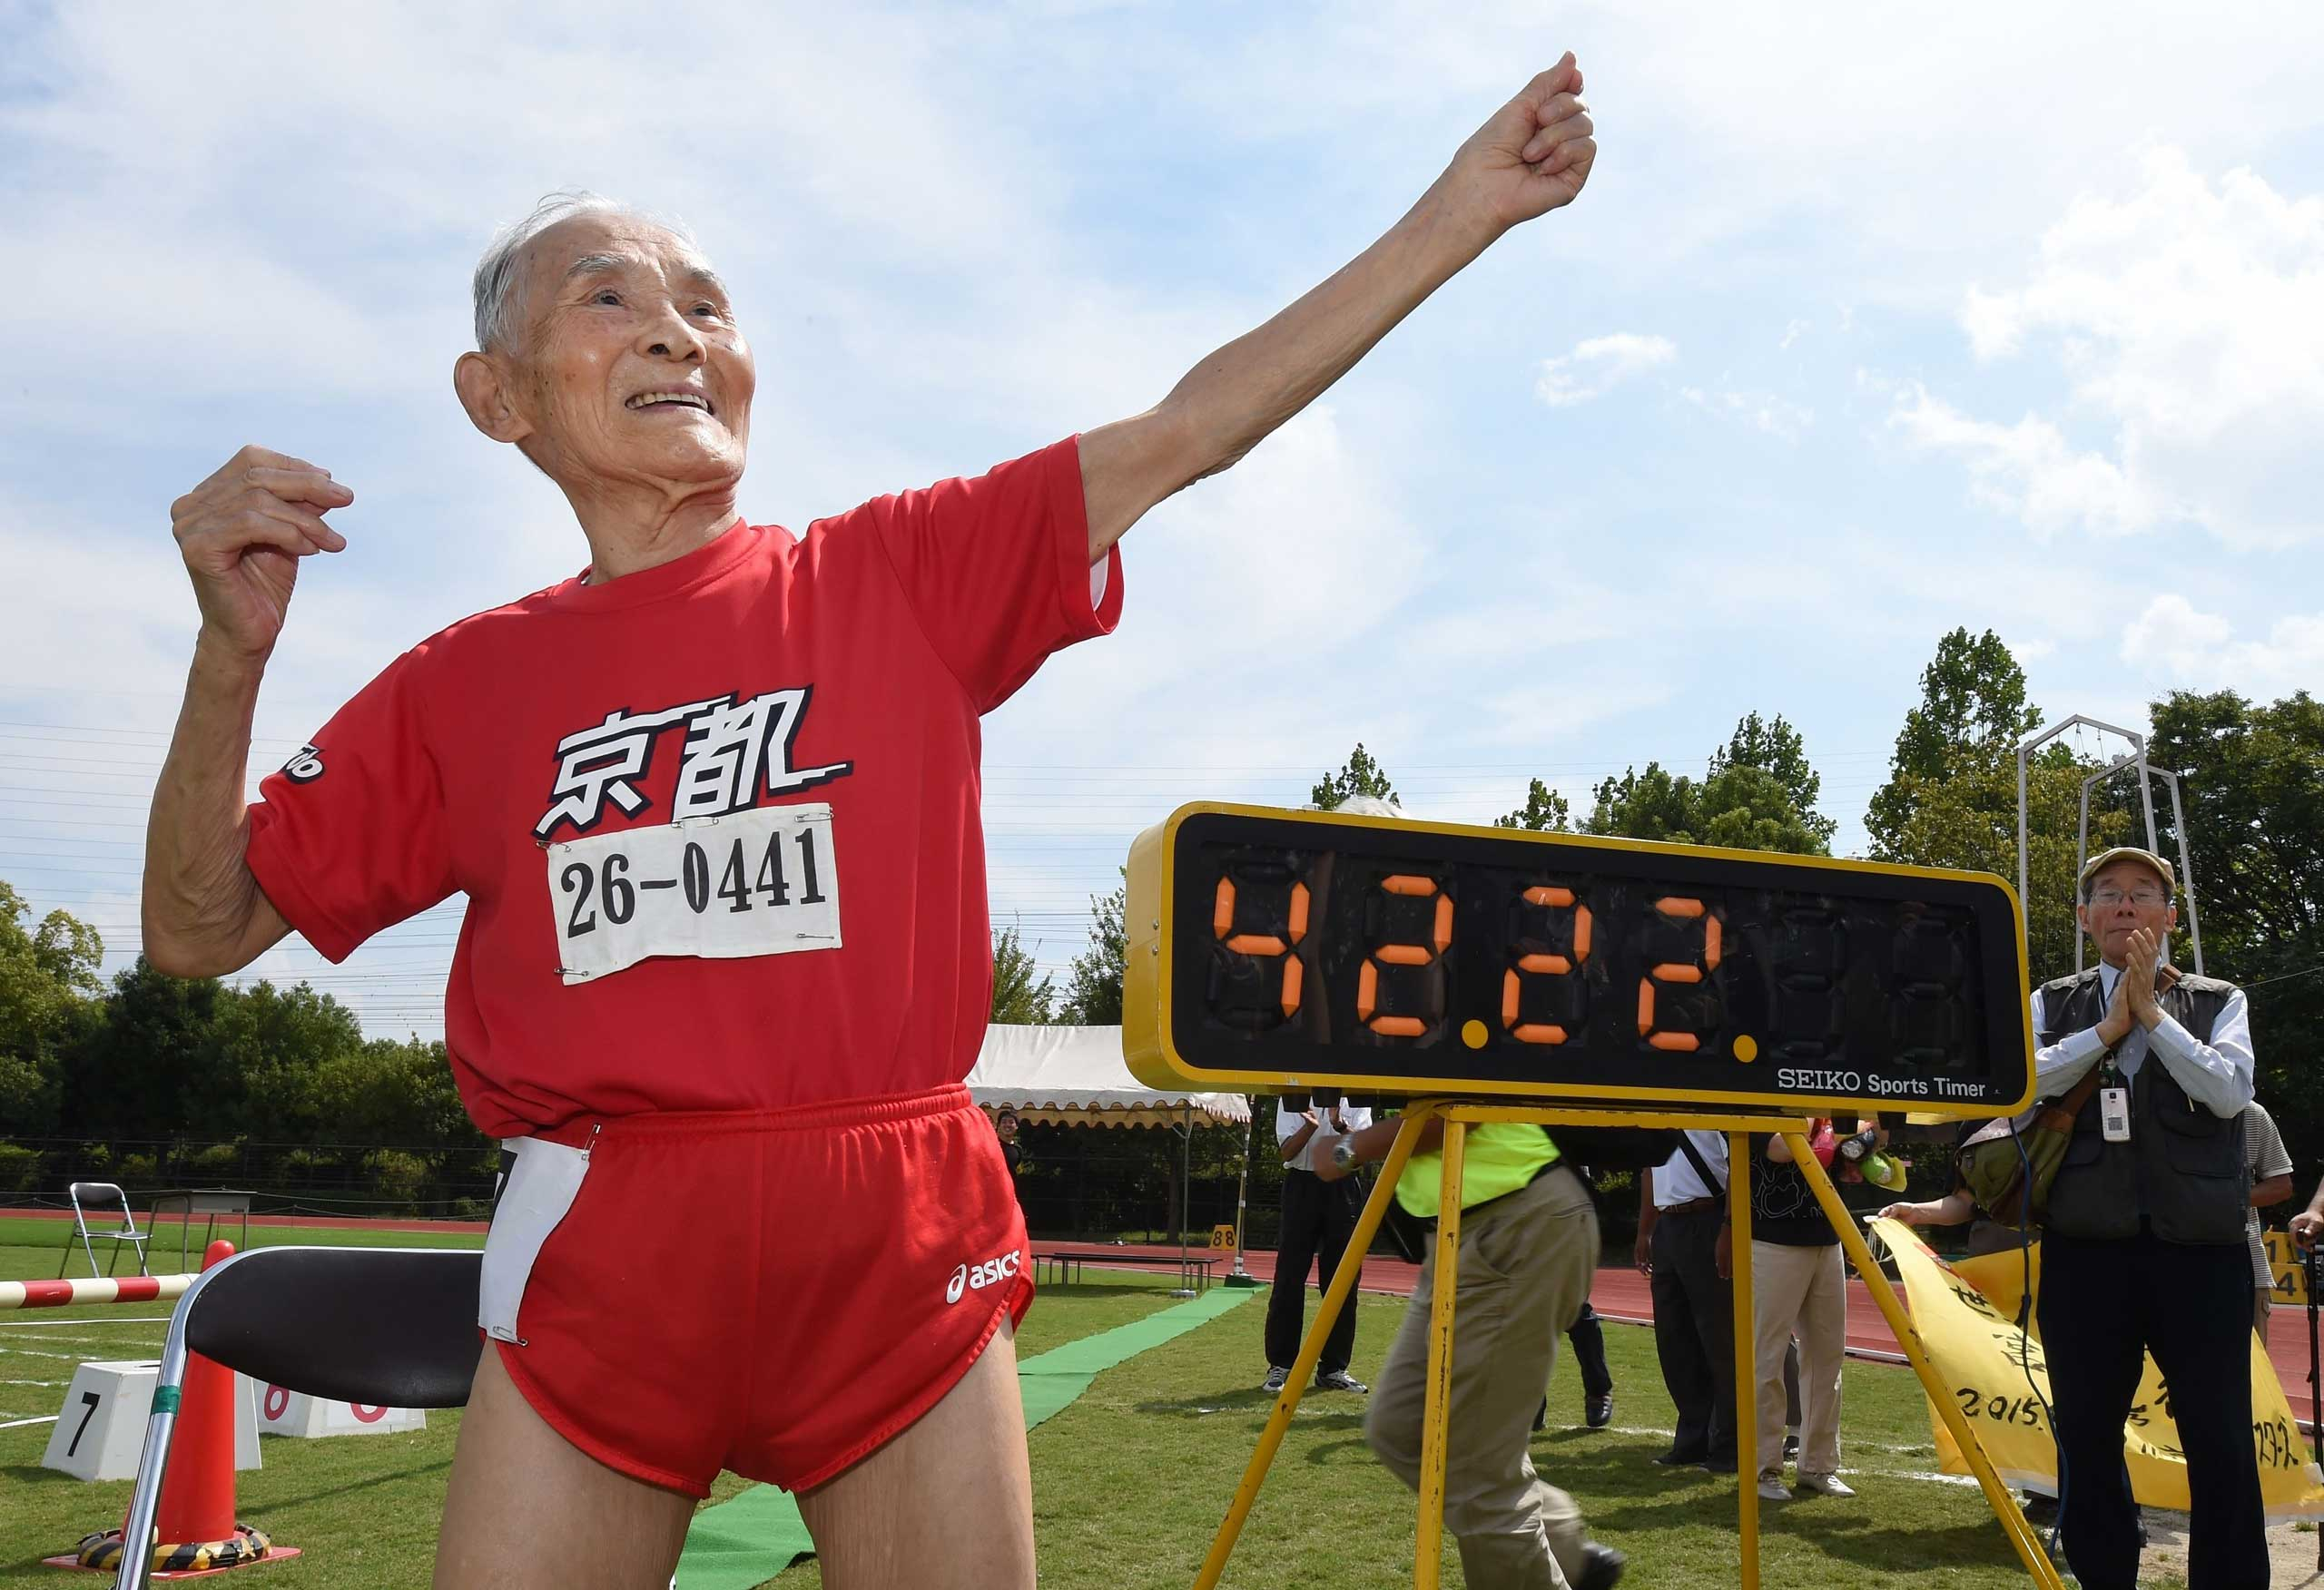 Hidekichi Miyazaki, 105, imitates the pose of Usain Bolt after running with other competitors over eighty years of age during a 100-metre-dash in the Kyoto Masters Autumn Competiton in Kyoto, western Japan, on Sept. 23, 2015.